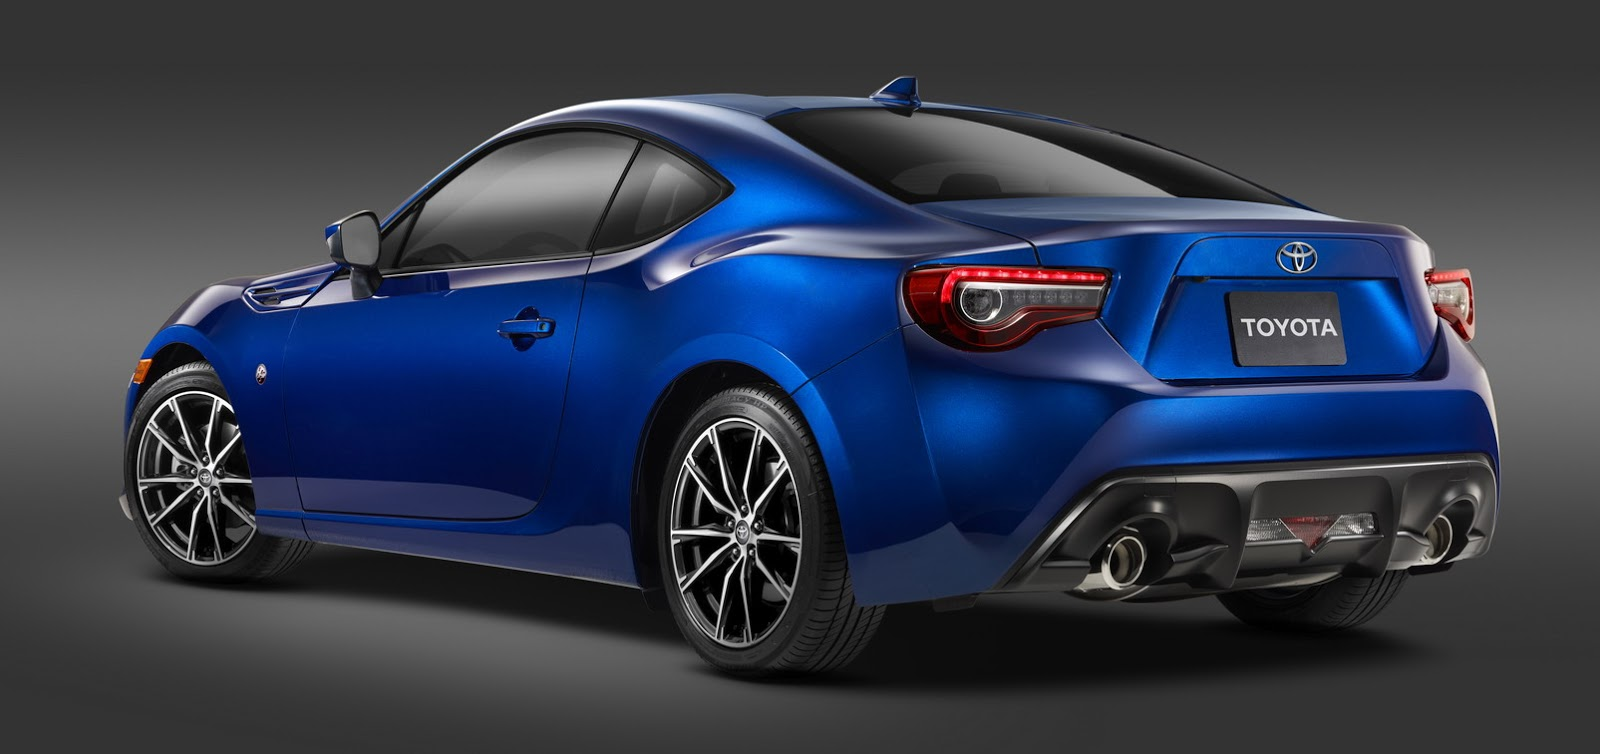 Car Dealerships In Twin Falls >> The 2017 Toyota 86 Is Here To Replace The Scion FR-S | Carscoops